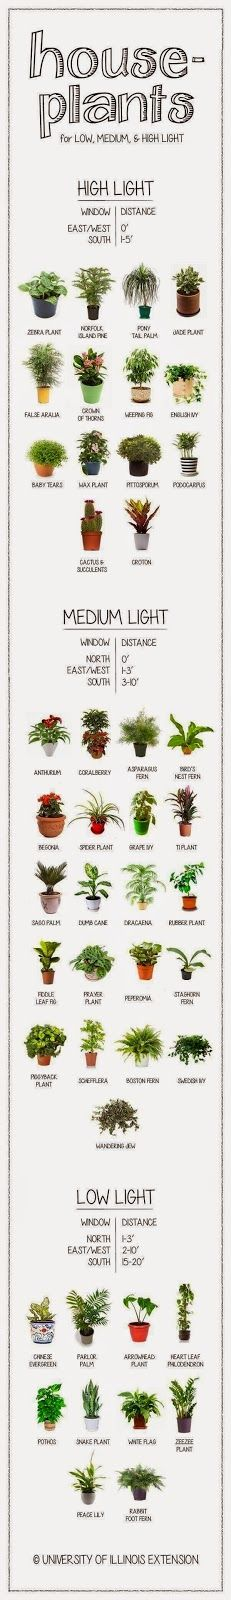 A visual guide to houseplants, according to their need for light. #Plant #Pot #Ideas